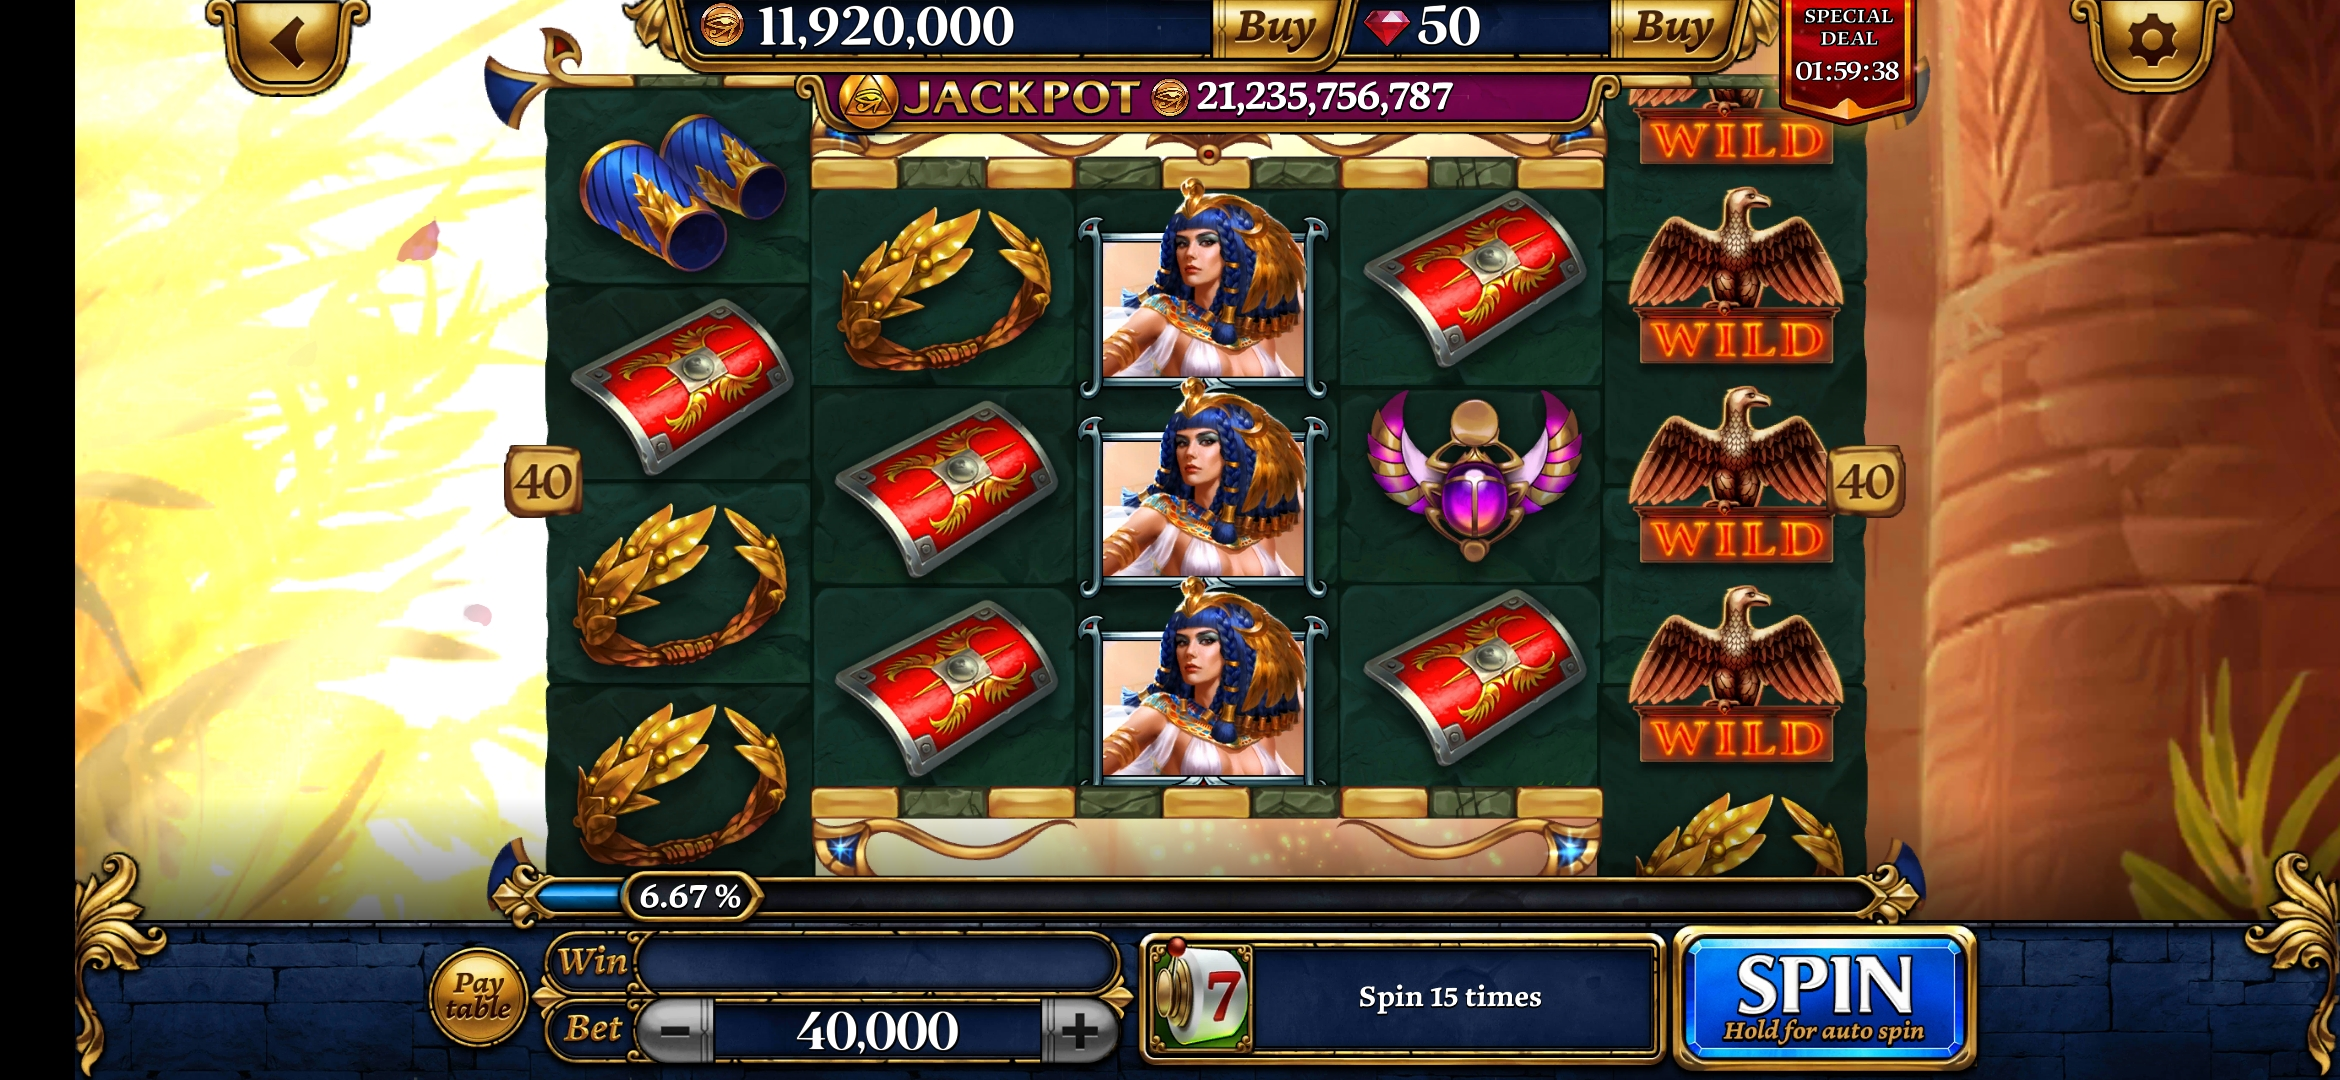 Slots journey 2 free coins